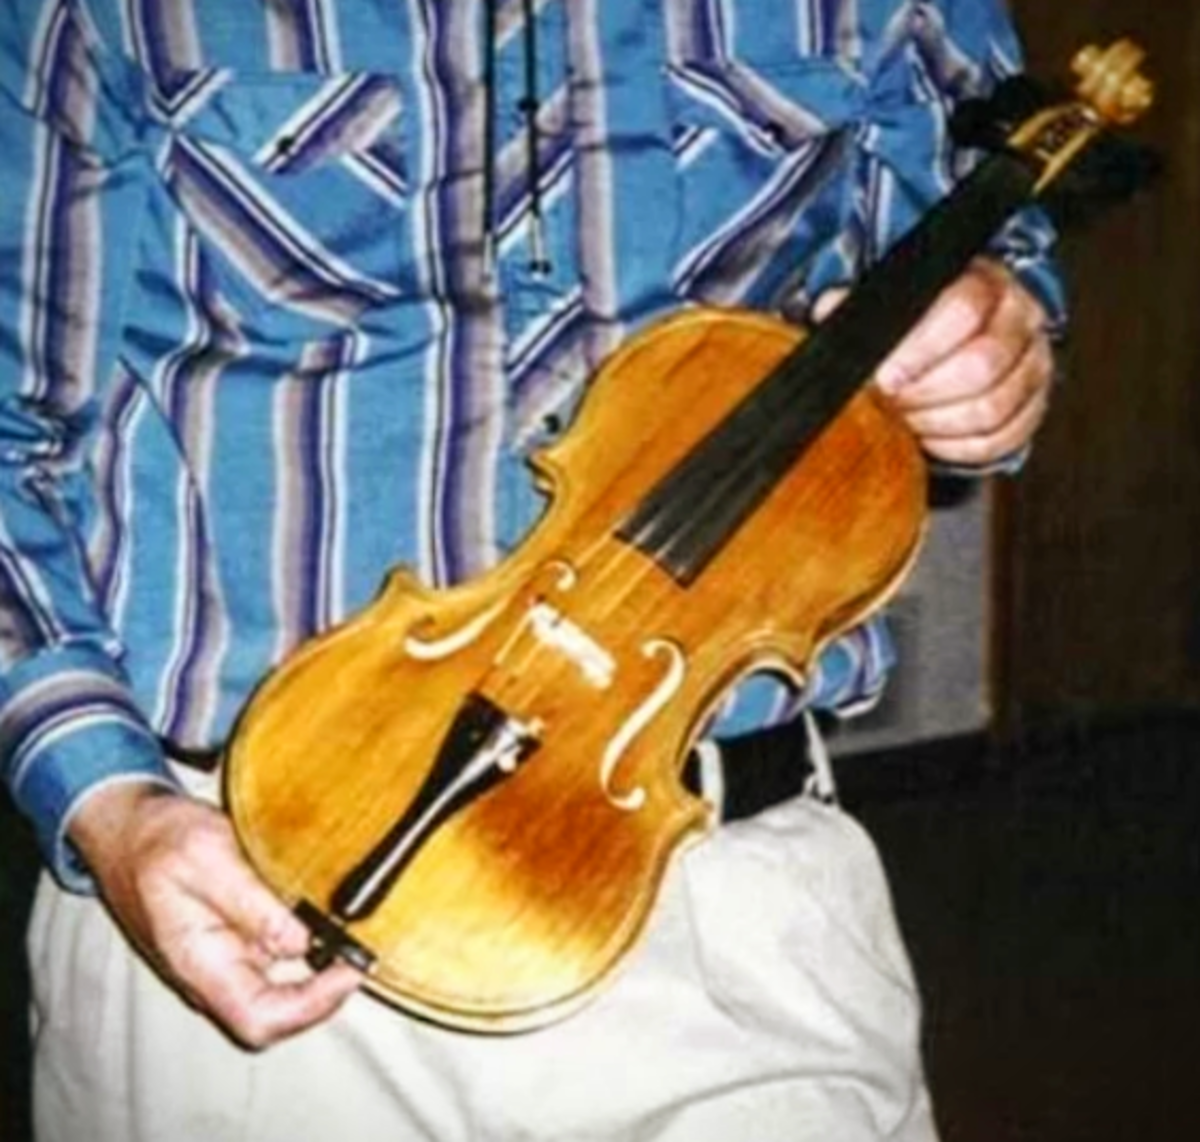 My Golden Fiddle: Story of a Homemade Violin